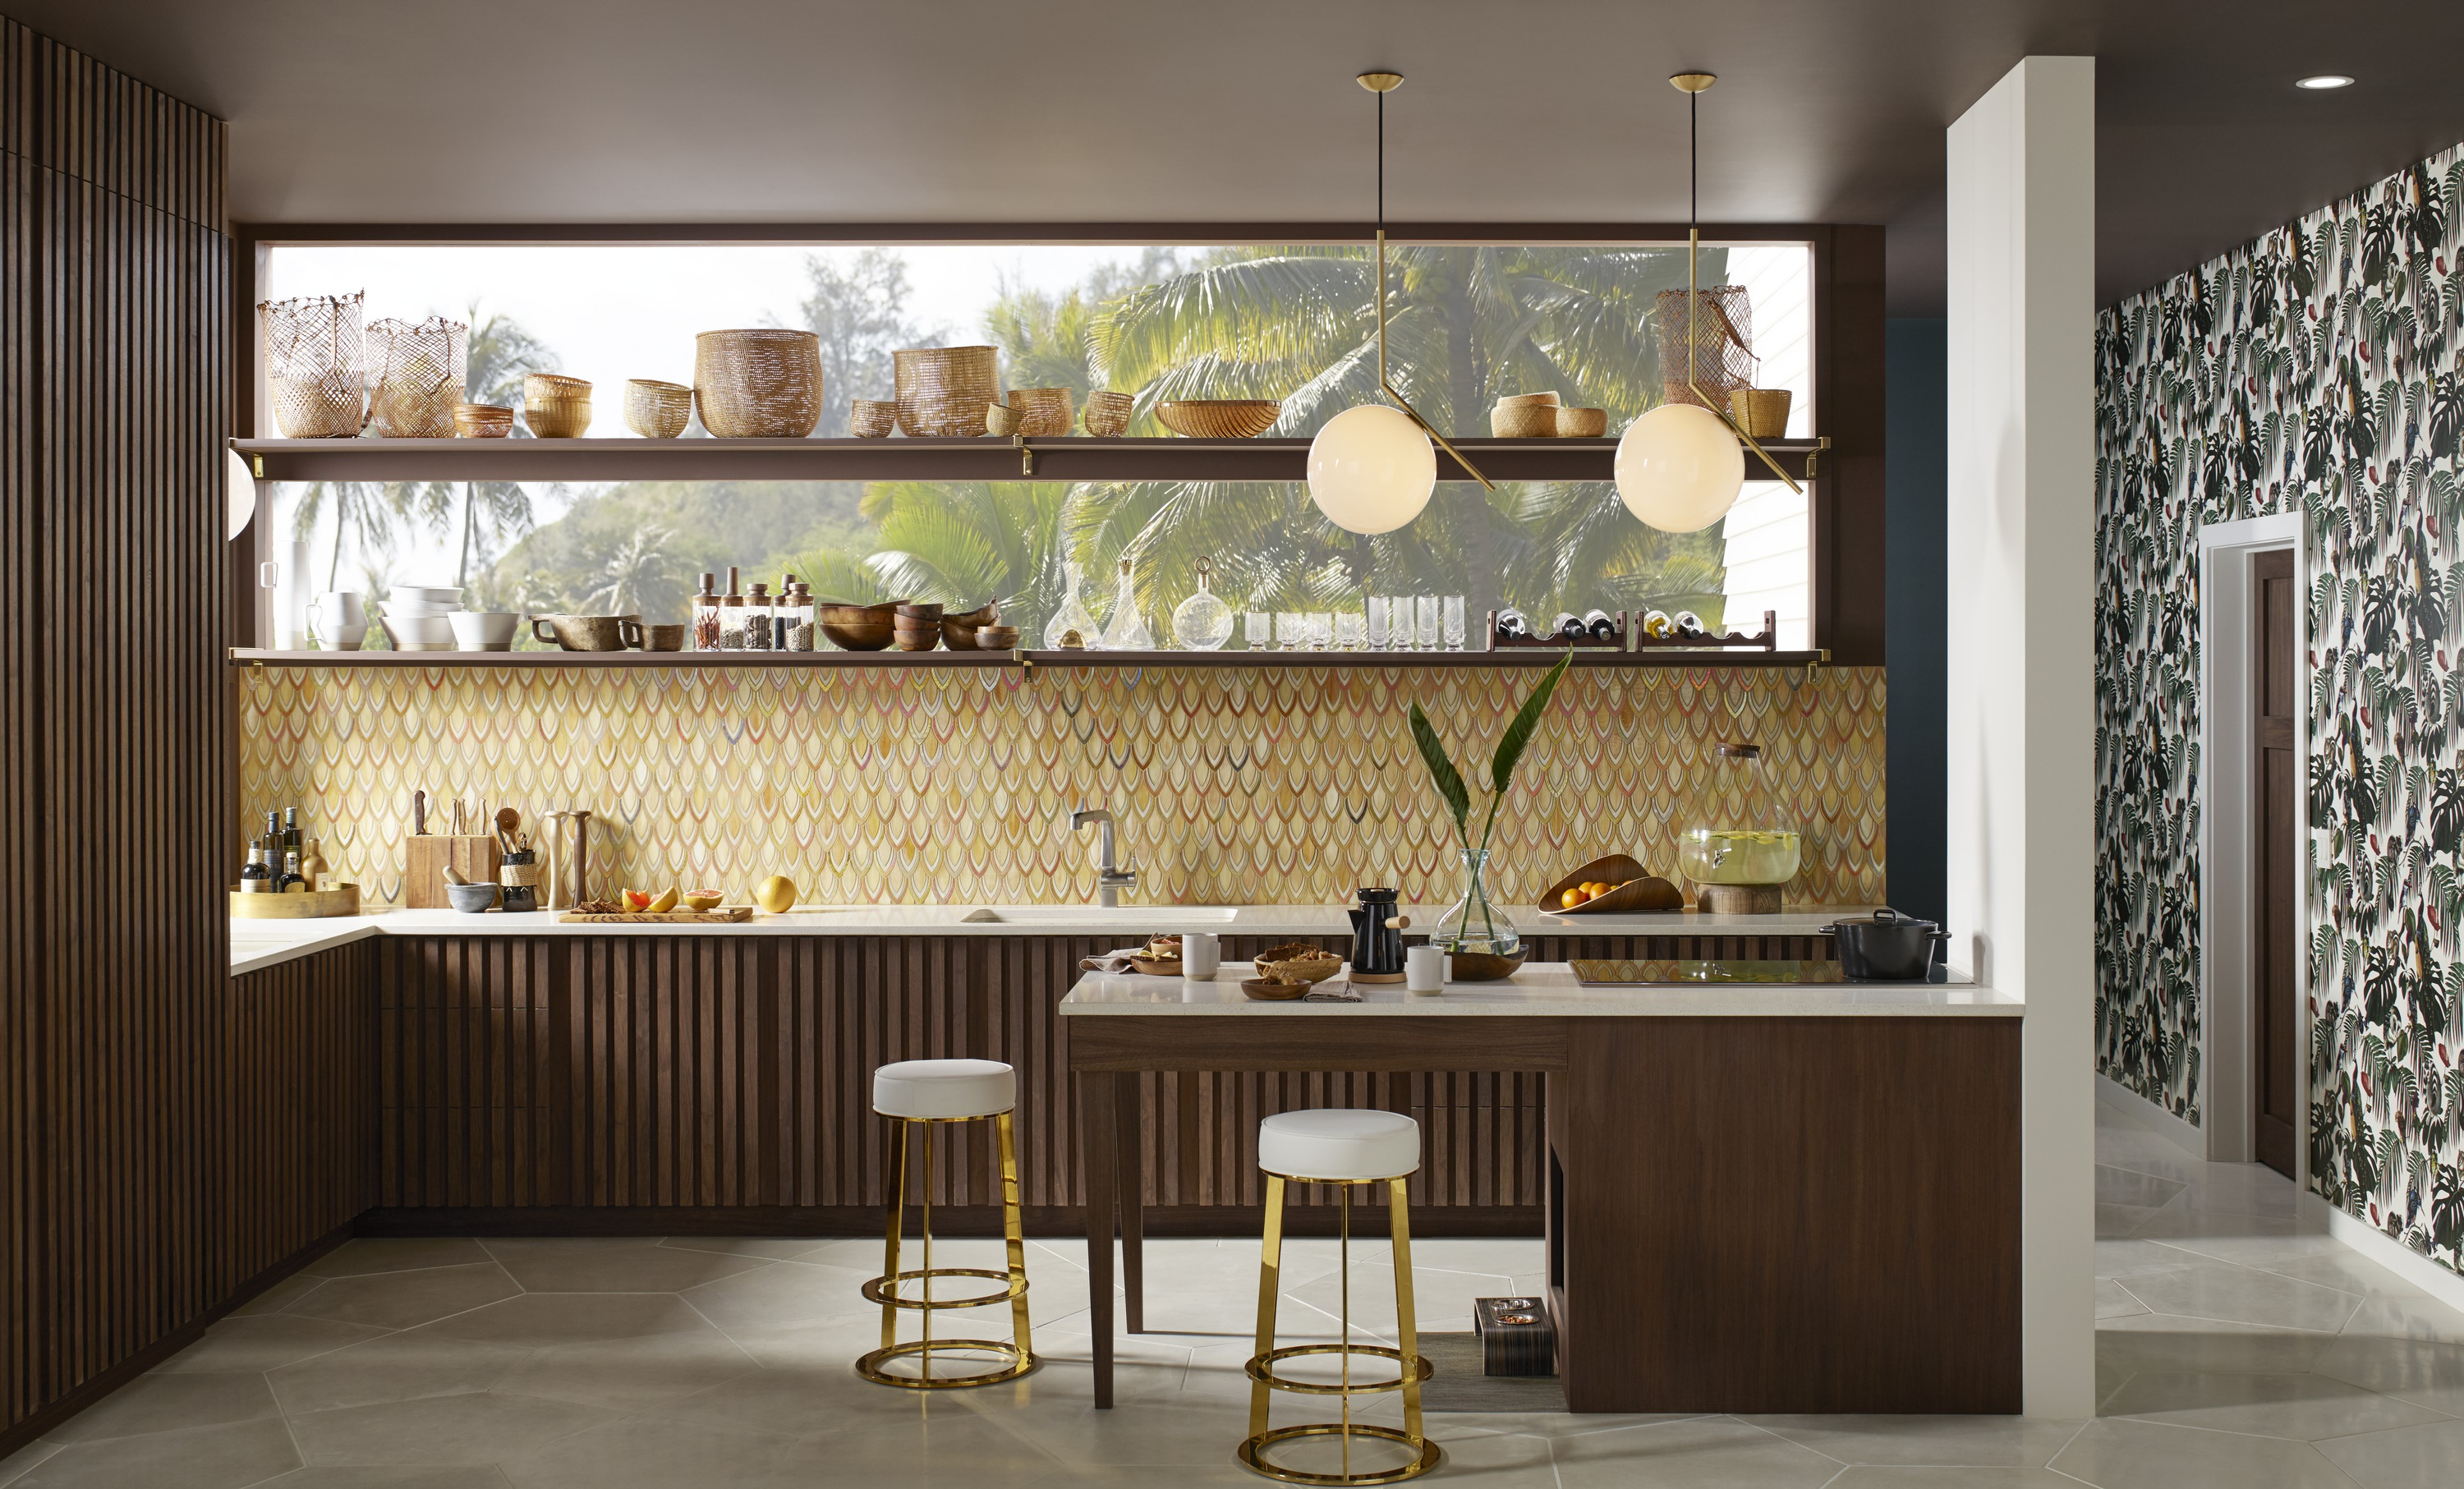 Evoke® pullout faucet     Riverby® under-mount sink     ANN SACKS® Chrysalis mosaic     ANN SACKS Ogassian tile     A colorful backsplash softens the dark vertical wood slats and geometric concrete floor.